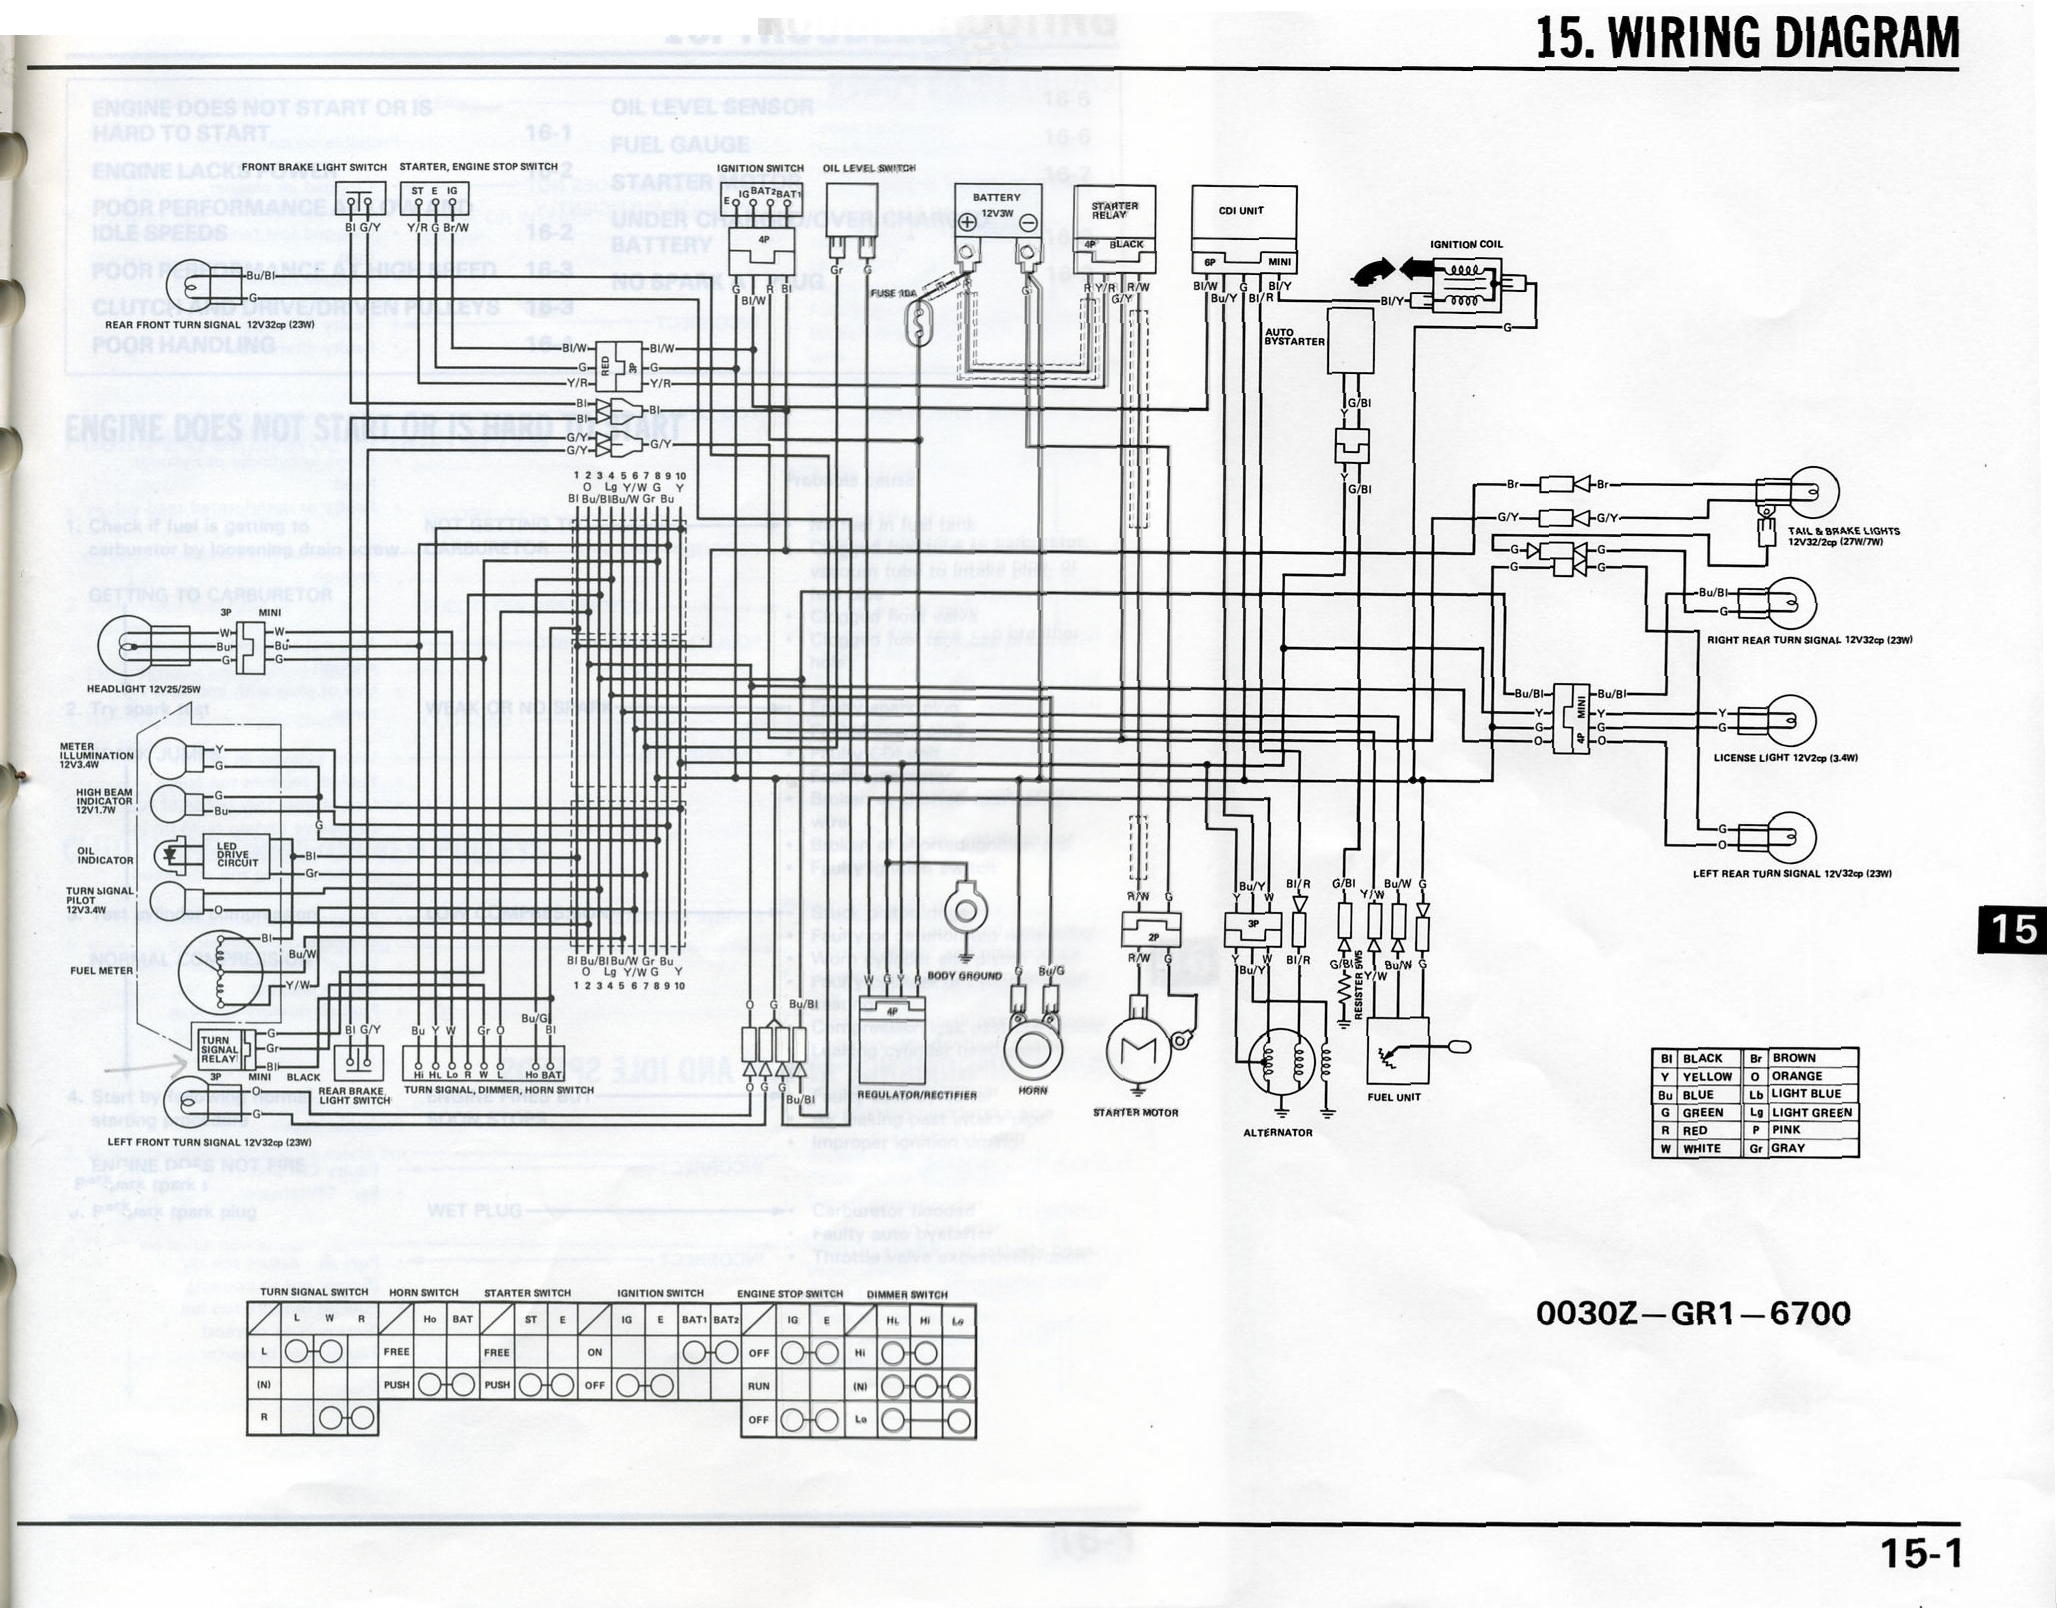 1985 Honda Spree Wiring Diagram : 31 Wiring Diagram Images